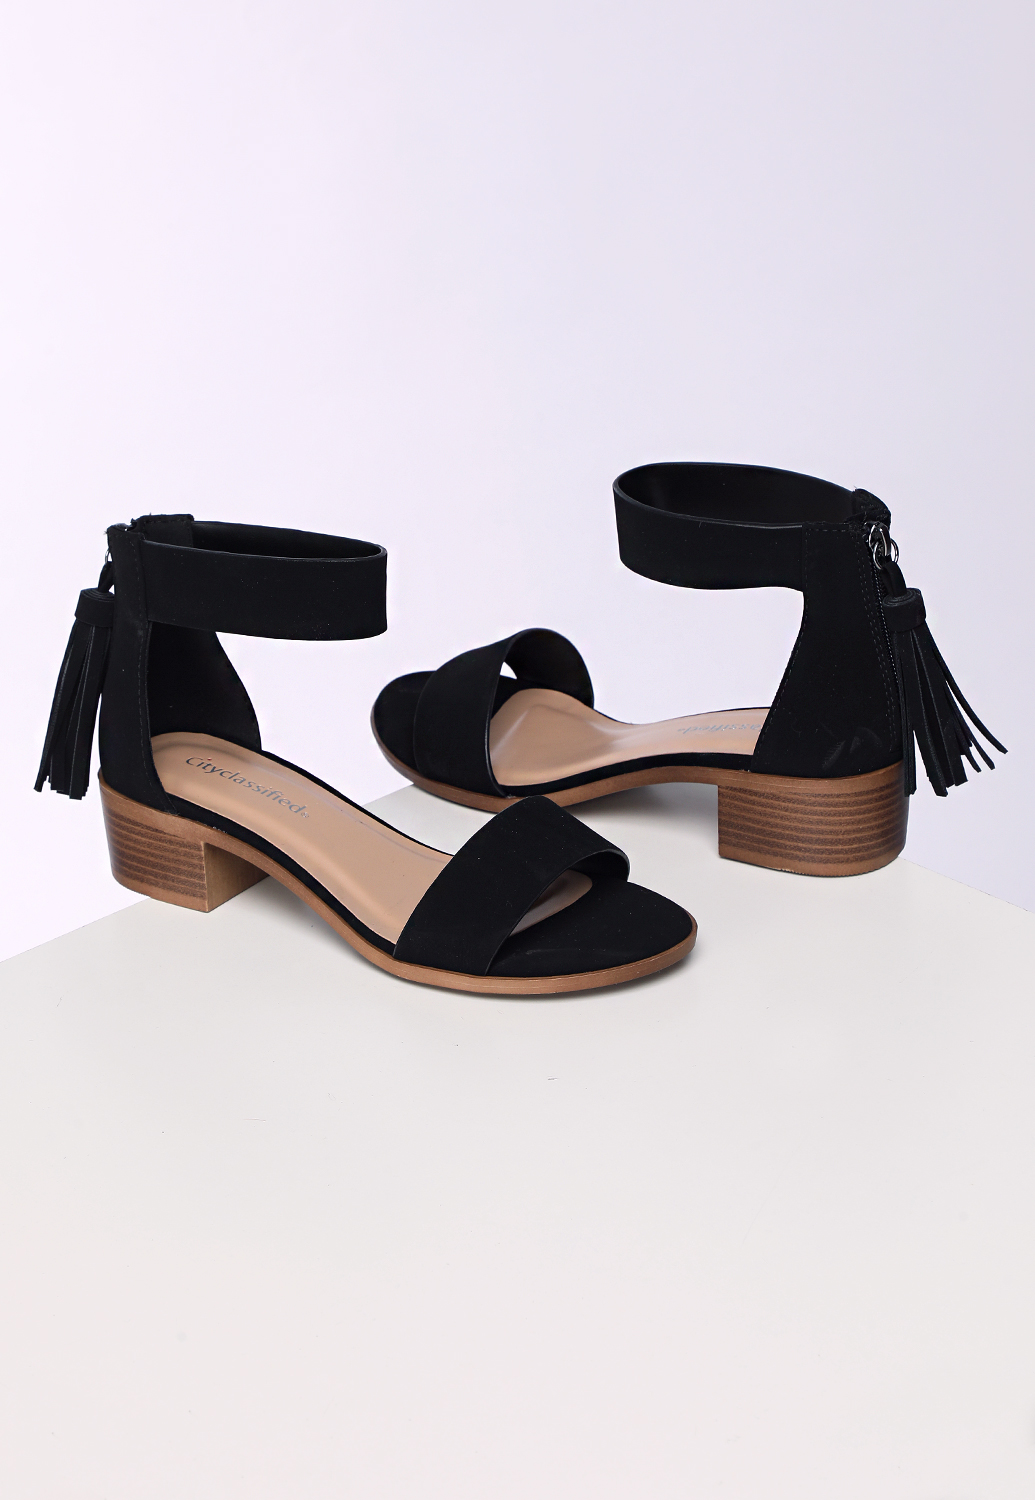 Tassel Low Heel Sandals